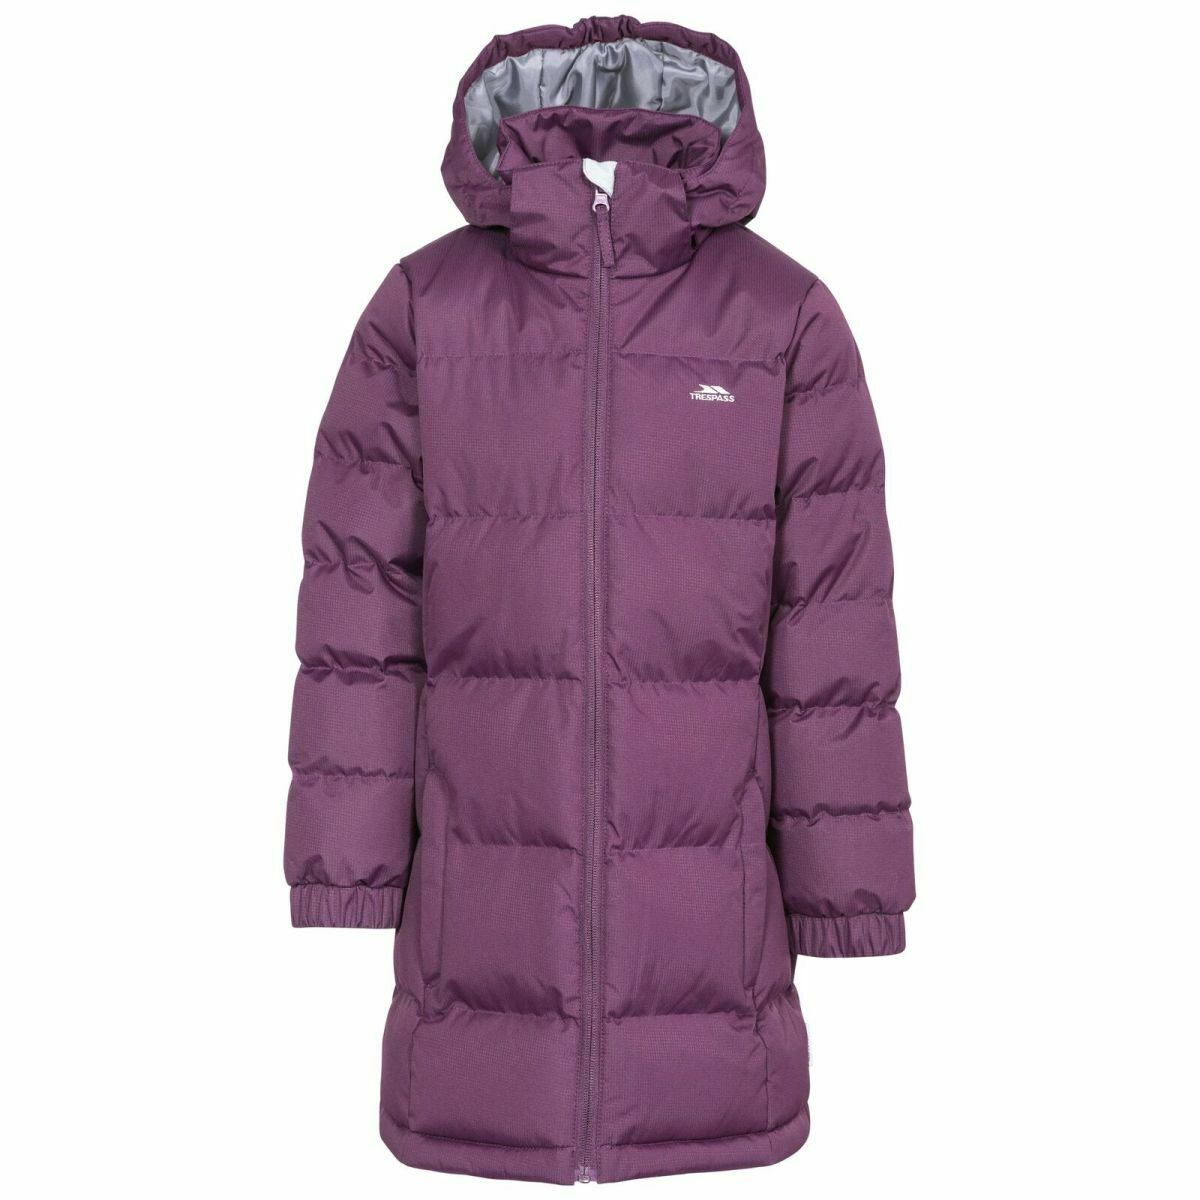 Trespass Kid's Puffa Jacket Various Colours Tiffy - Potent Purple 9 to 10 Years